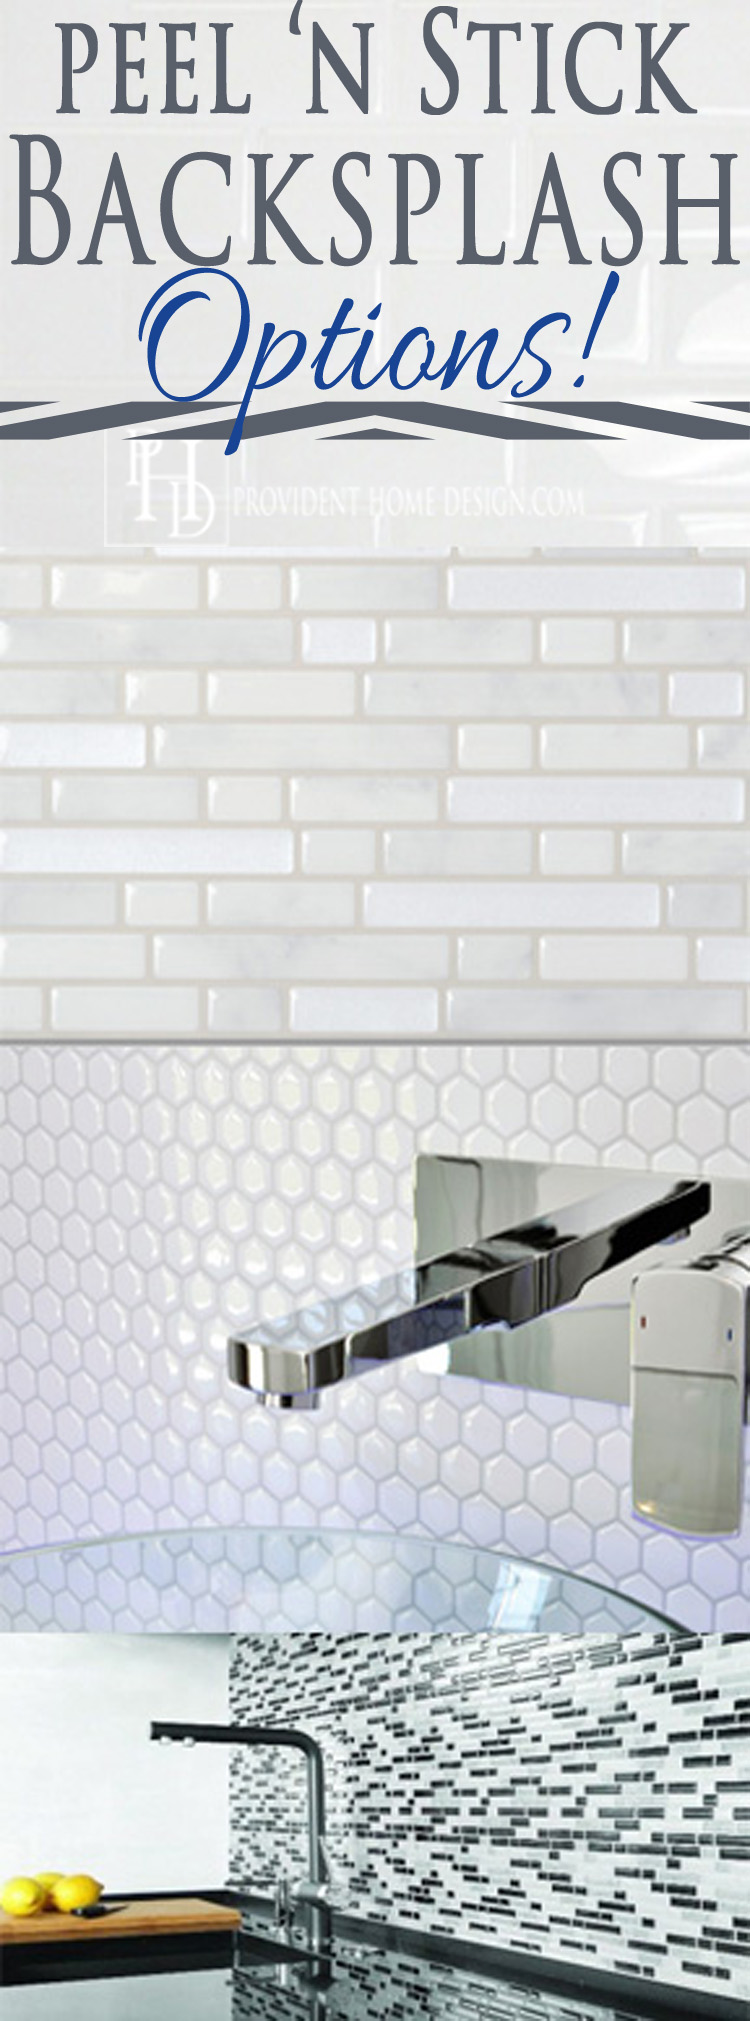 peel n stick backsplash options